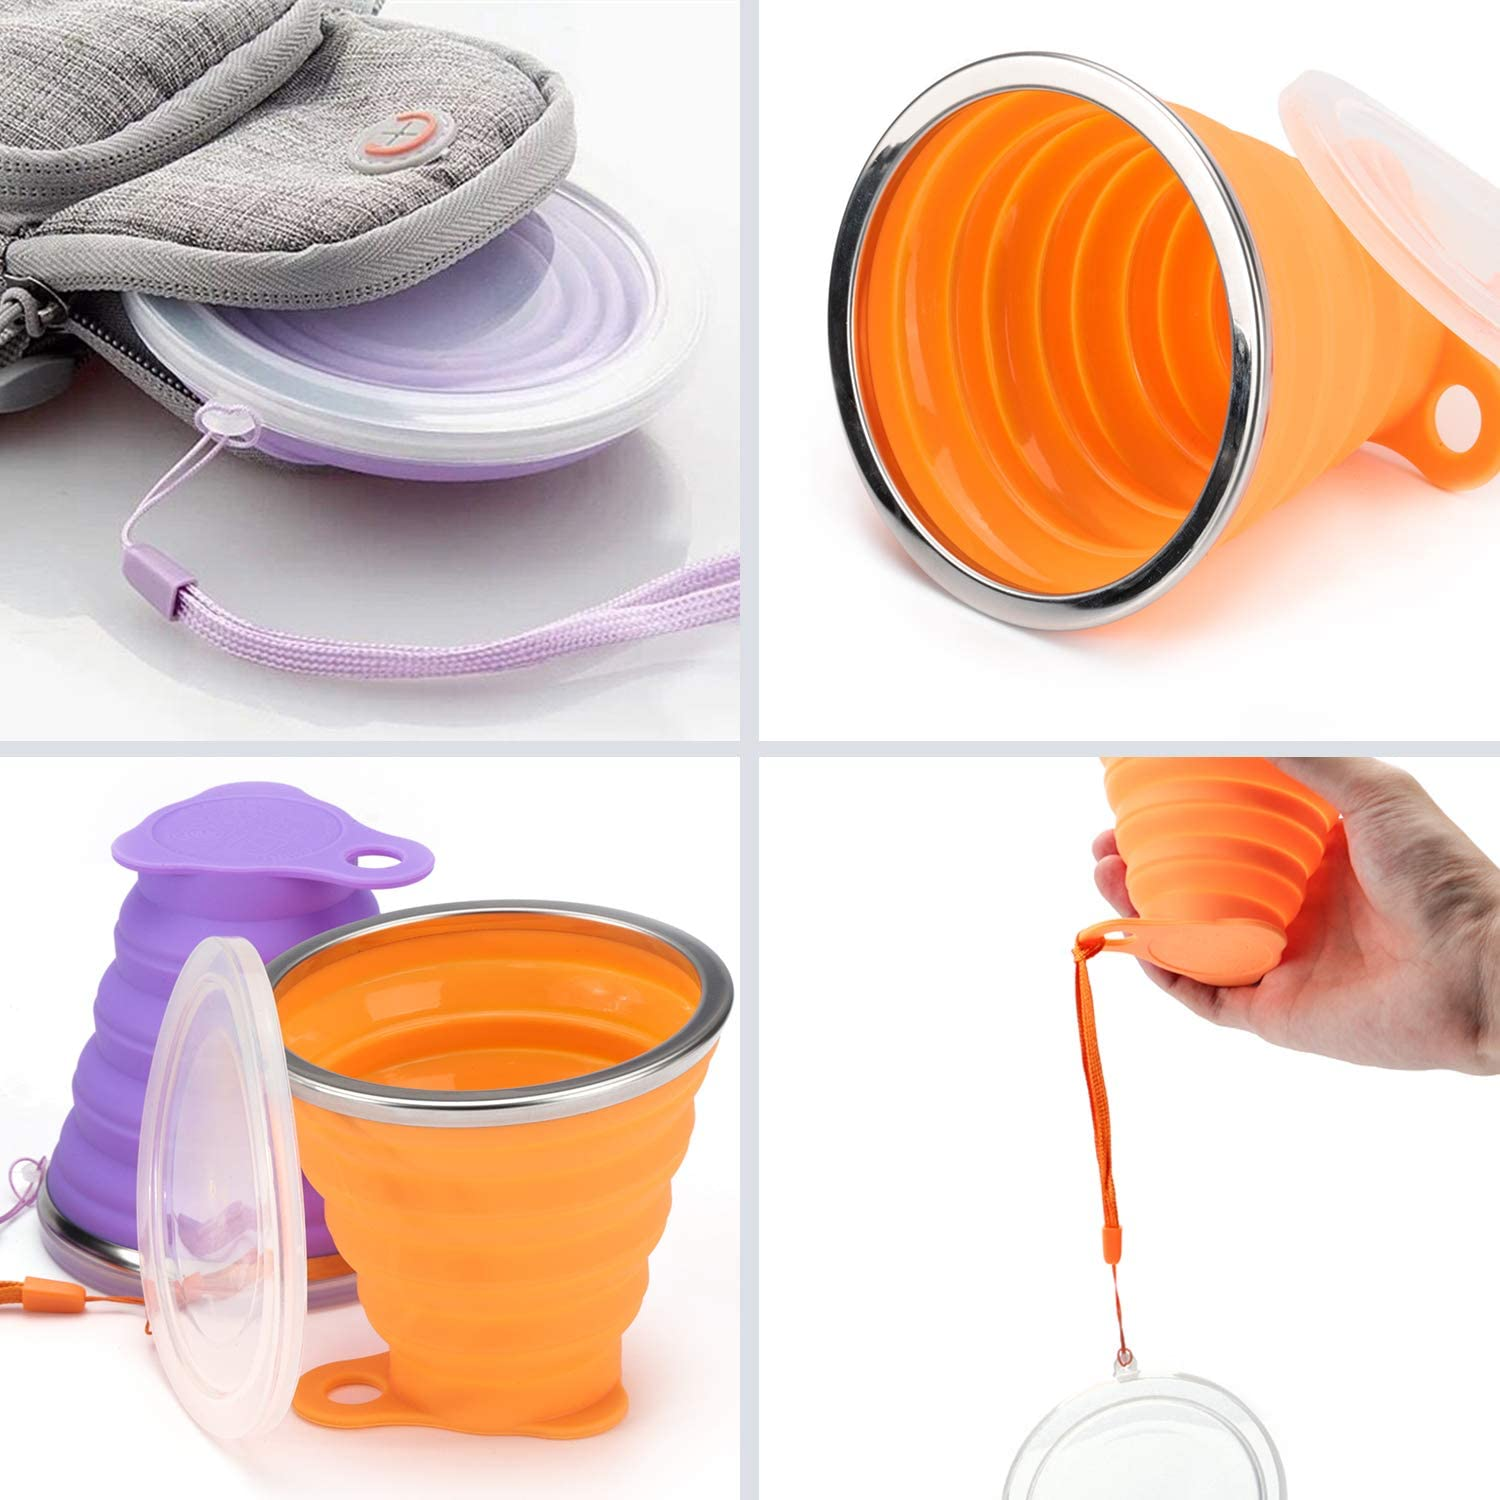 OSVAW Food-Grade Silicone Foldable Water Cup BPA Free Collapsible water Cup for Travel Office Camping Hiking Portable Water Cup 9oz 2-pack